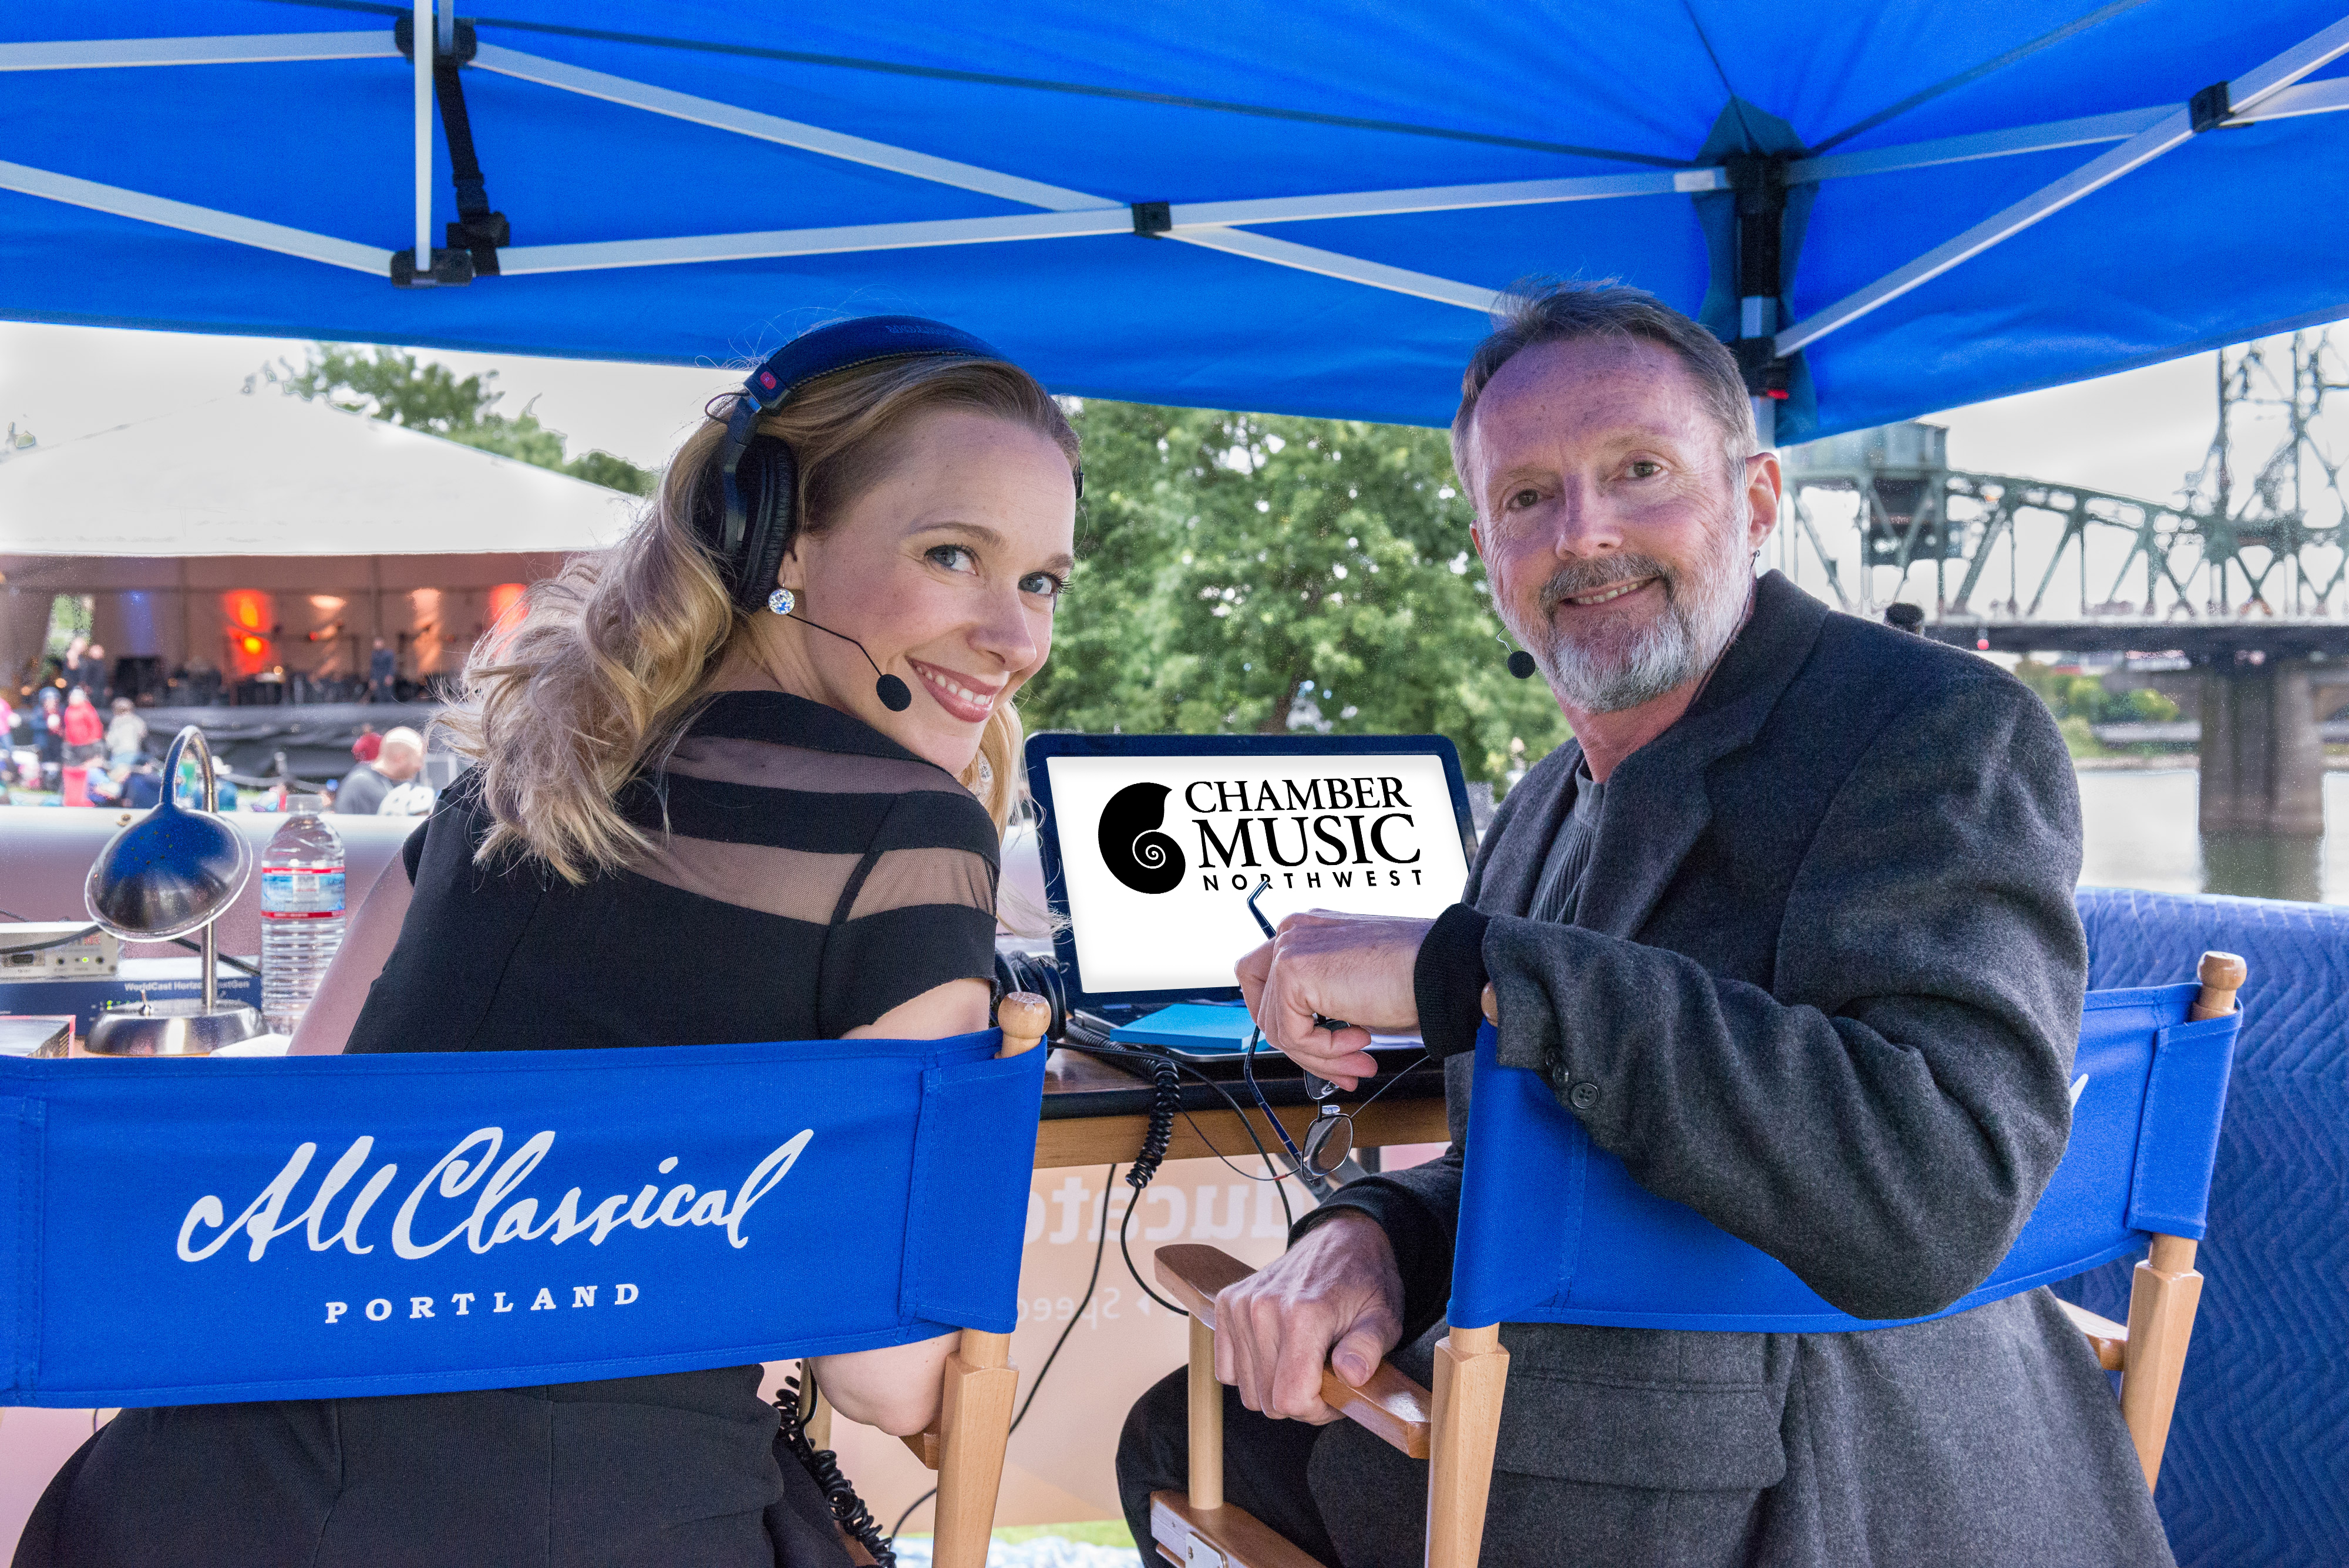 Caption: Join Suzanne Nance (left) and Robert McBride (right) for the 48th Annual Chamber Music Northwest Summer Festival